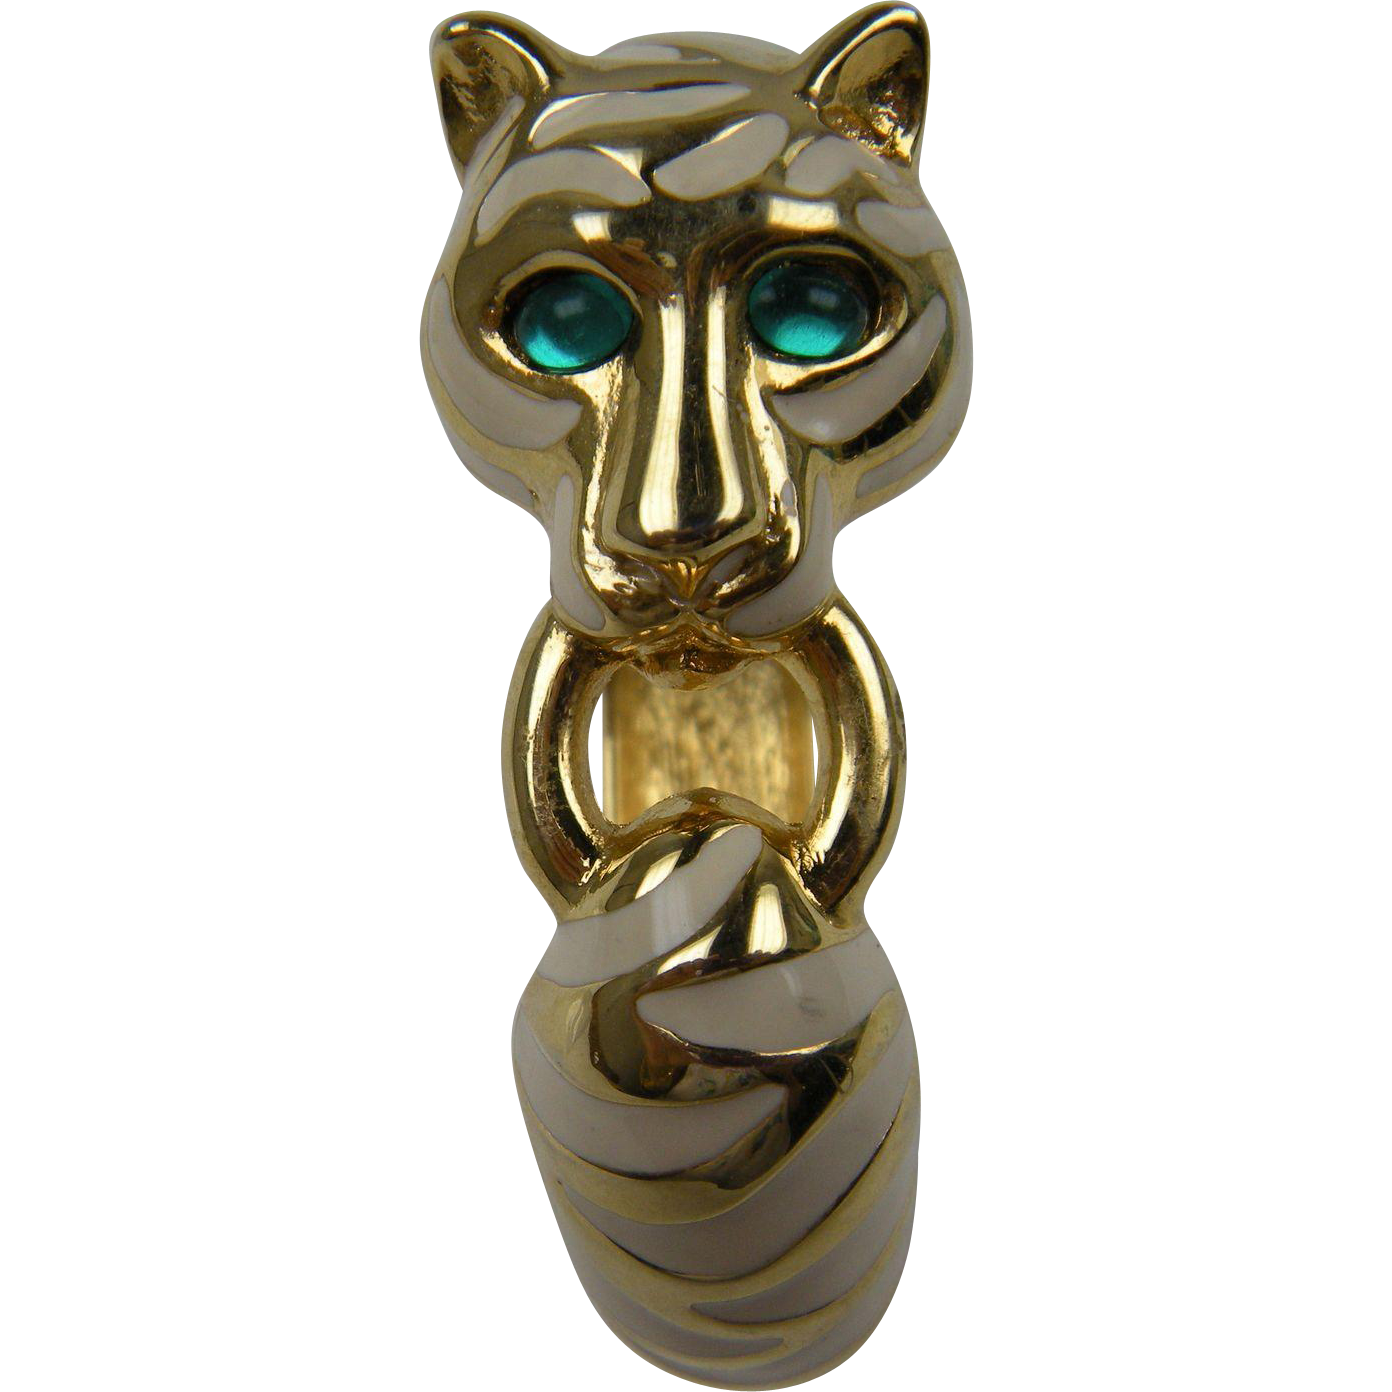 Cartier-Inspired Big Cat Bangle Bracelet